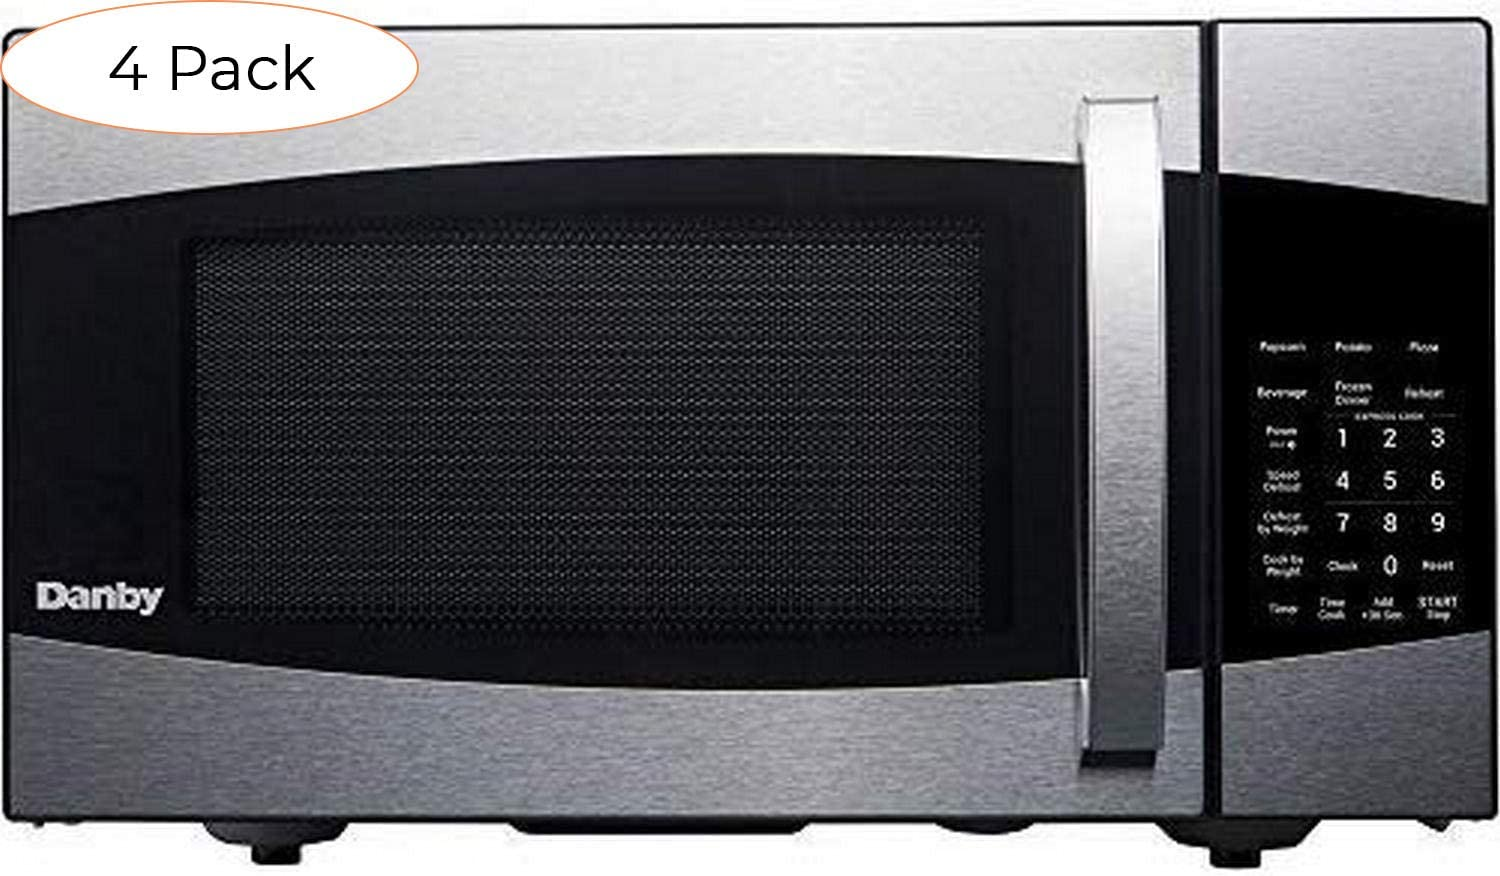 Danby DMW09A2BSSDB 99LD DMW09A2BSSDB 0.9 cu. ft. Microwave Oven, Stainless Steel.9 cu.ft, Pack 4